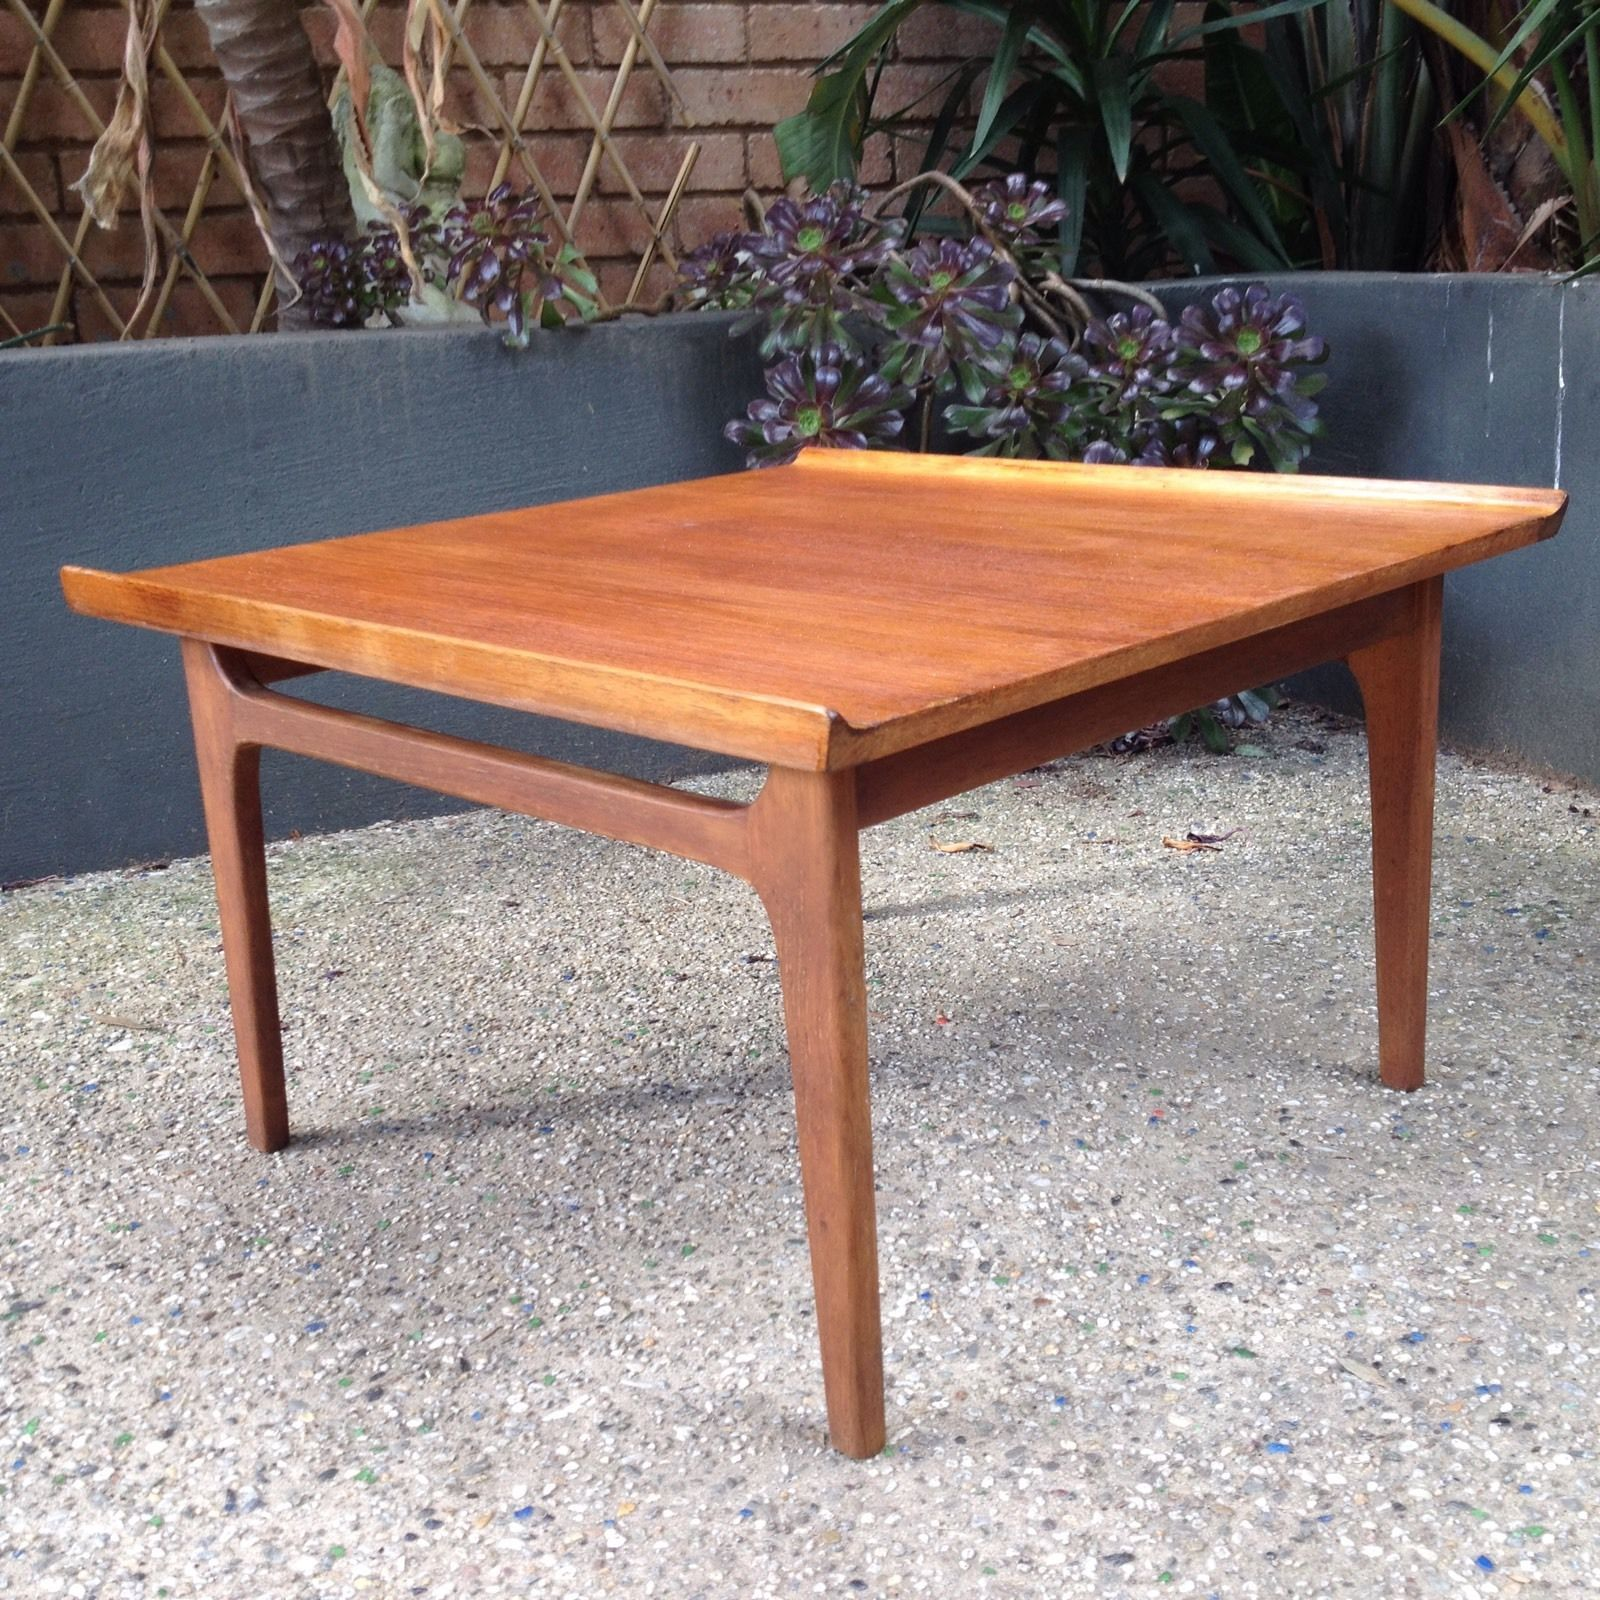 Danish Style Coffee Table: Coffee Table Teak 1960's Danish Style Lipped Edge Square